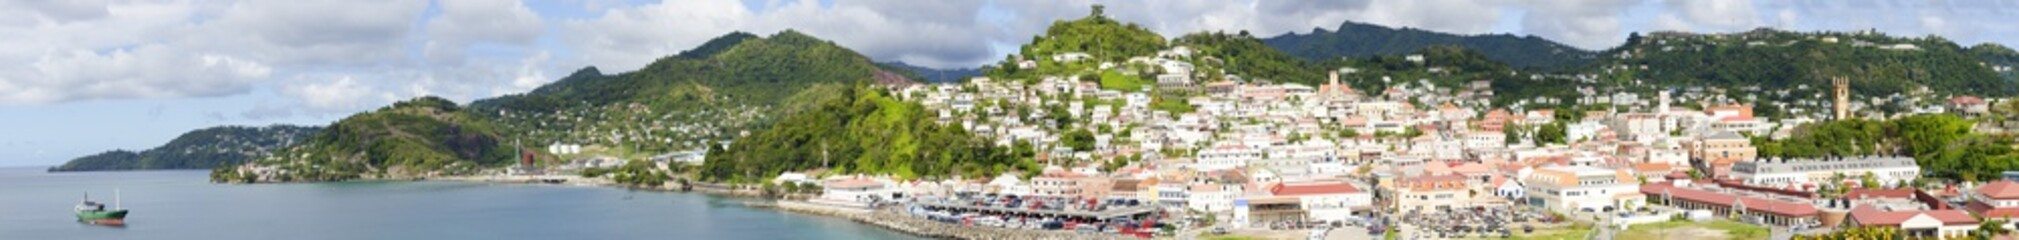 A panoramic view of the island of Grenada.